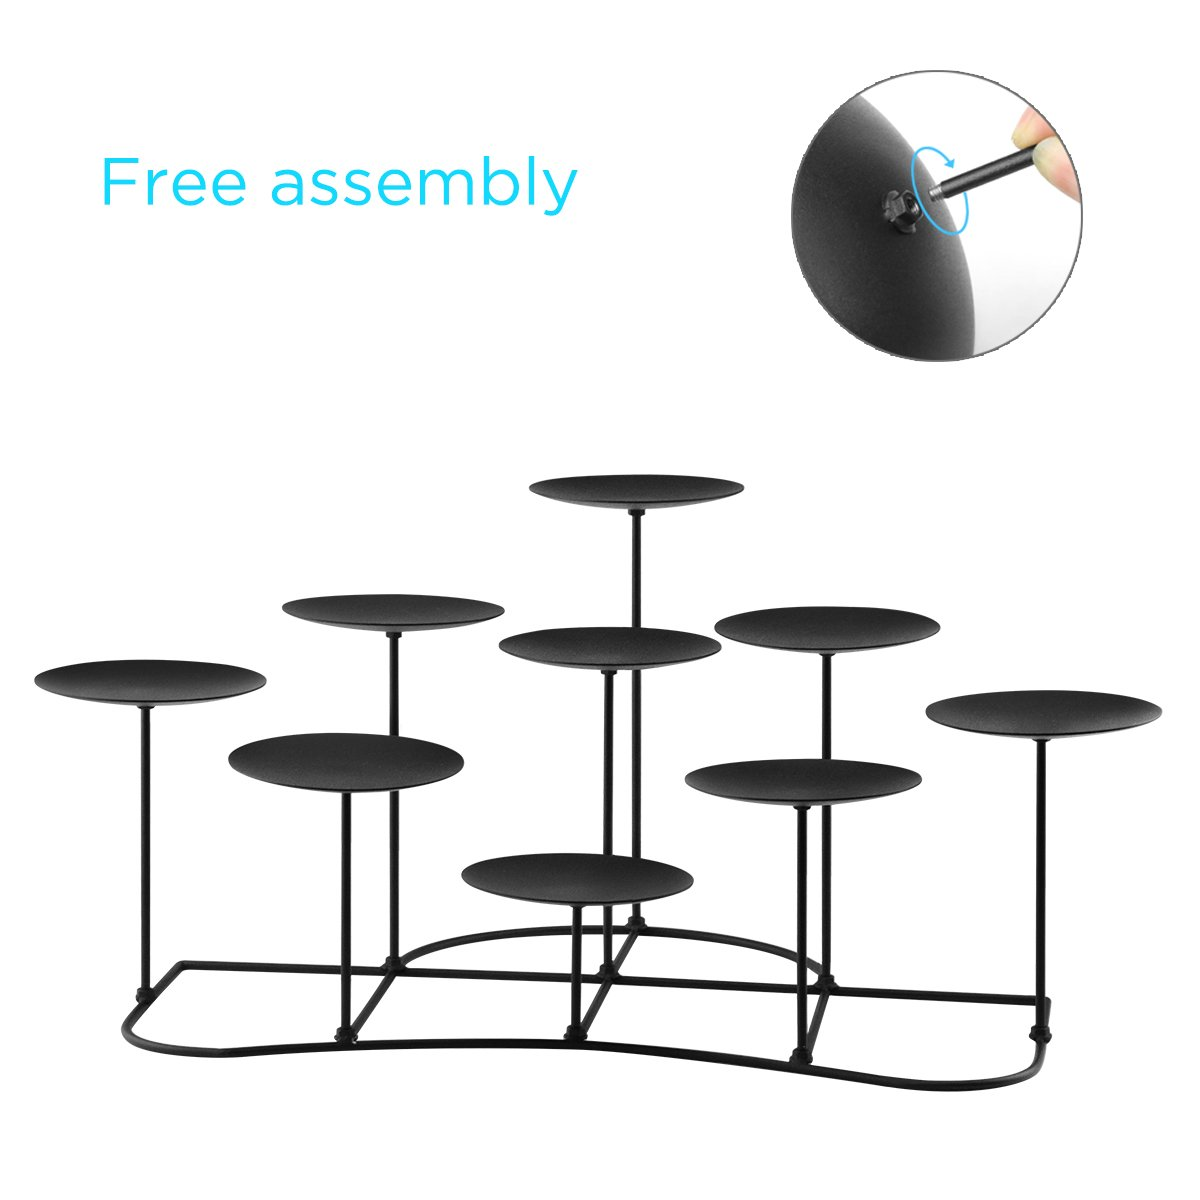 smtyle DIY 9 Mantle Candelabra Flameless or Wax Candle Holders For Fireplace with Black Iron Decoration on Desk / Floor by smtyle (Image #3)